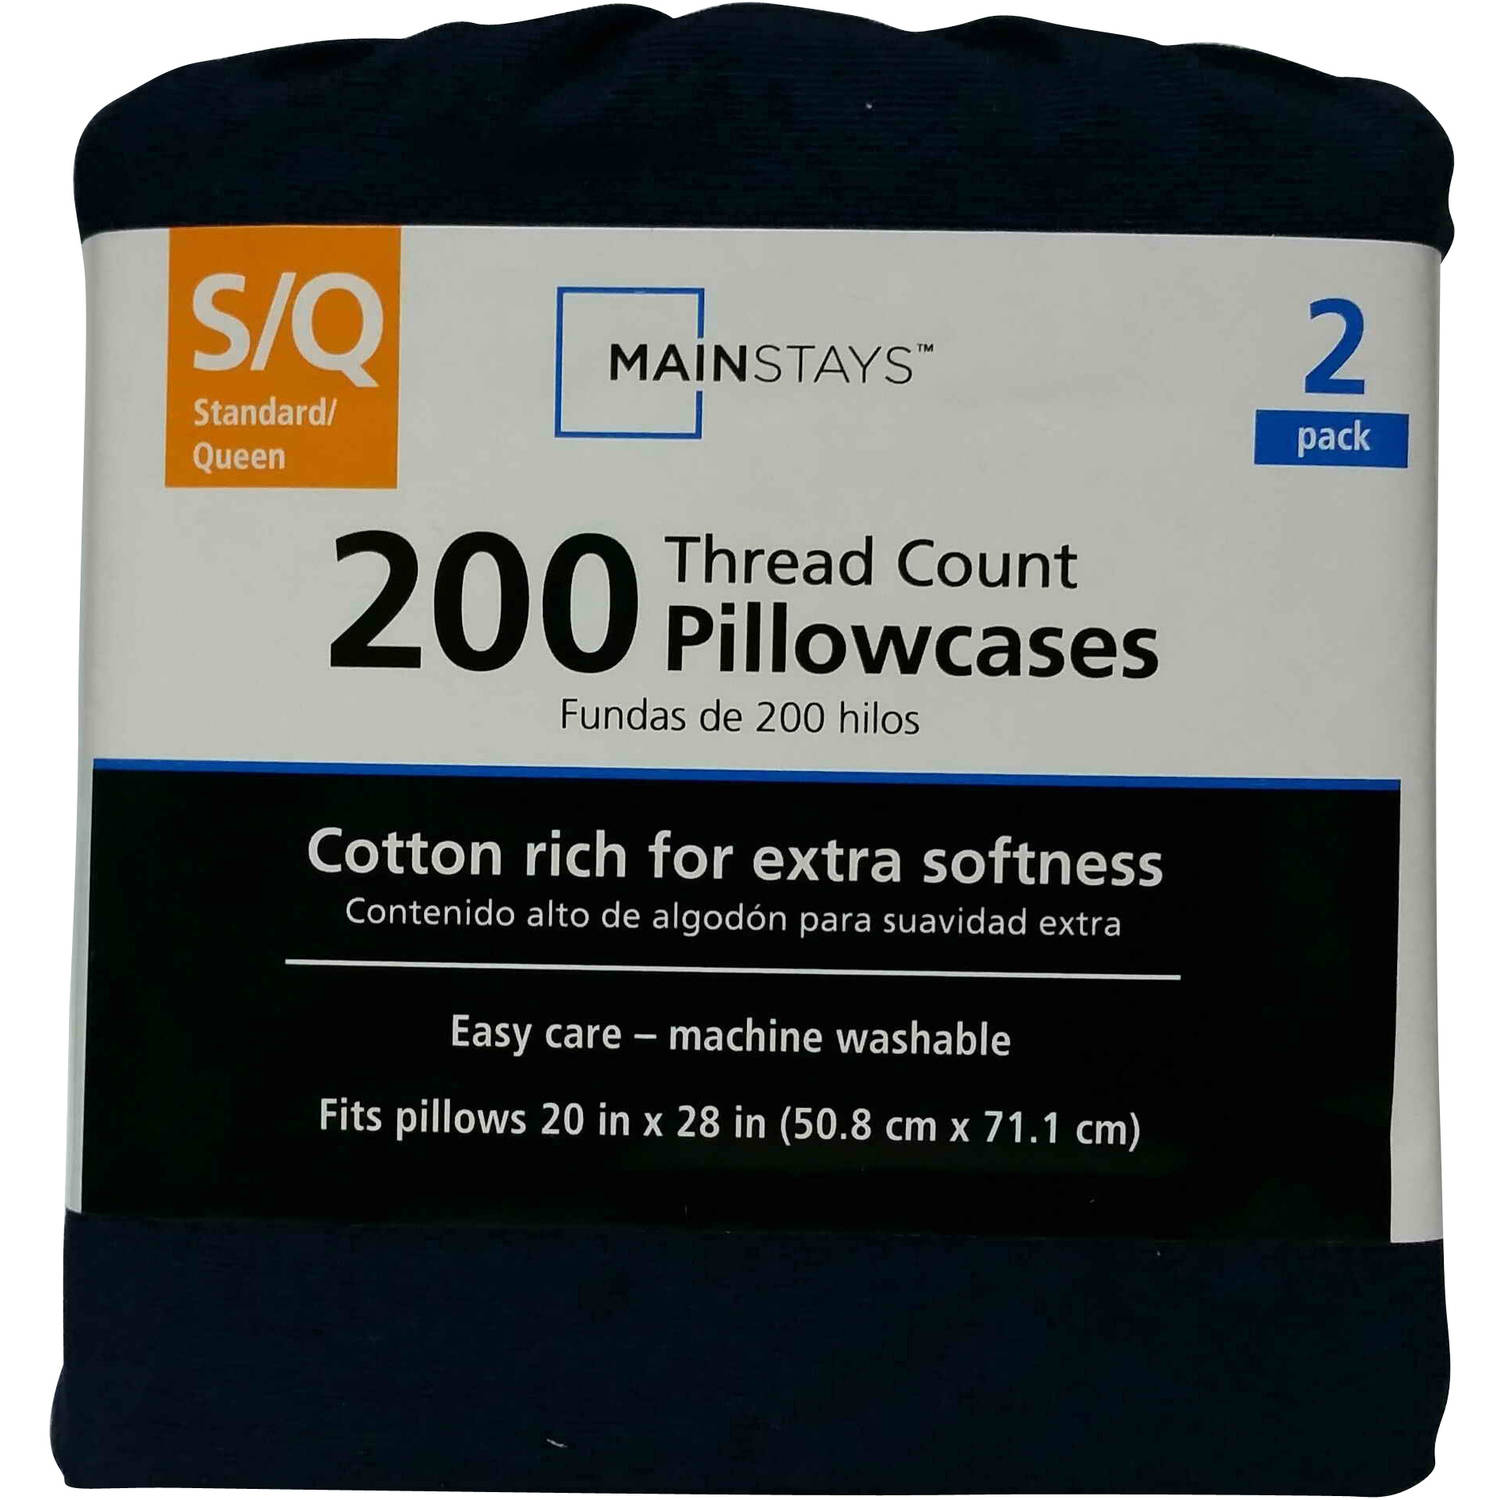 Mainstays 200 Thread Count Pillowcase Set